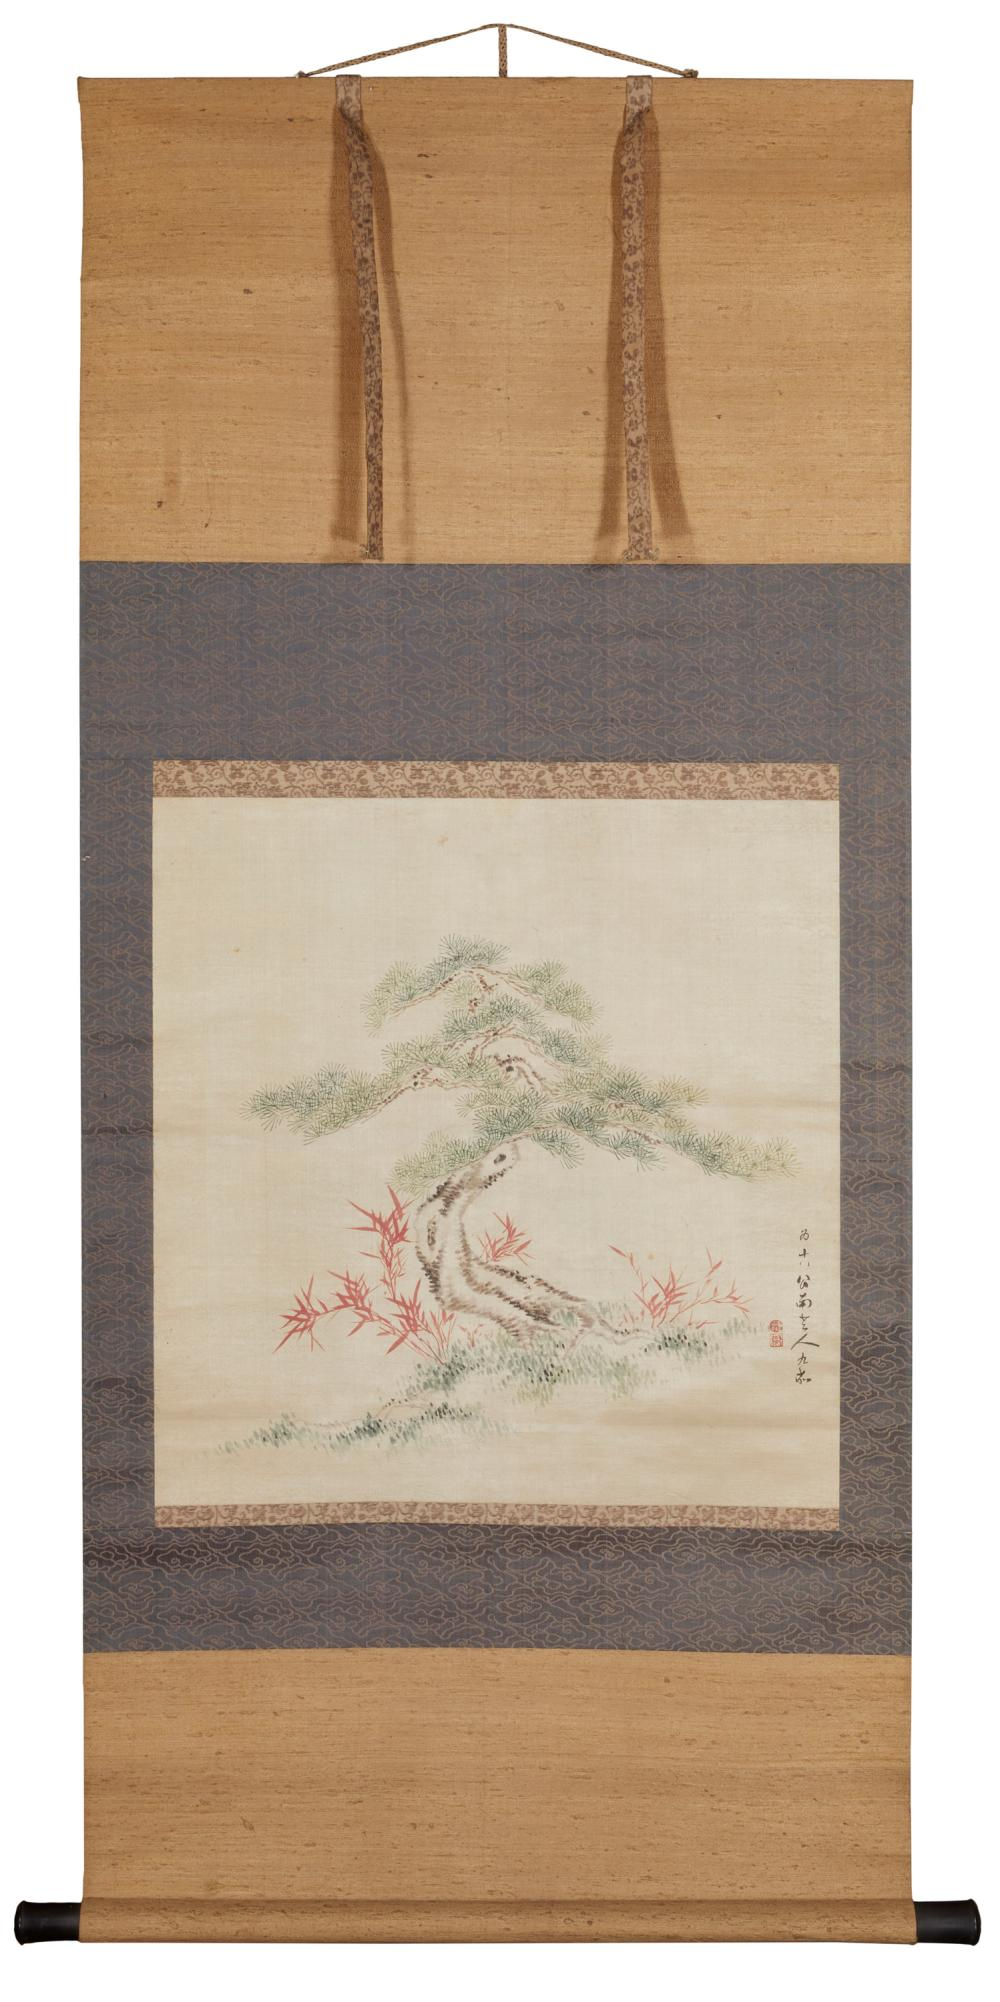 A Japanese scroll with a tree